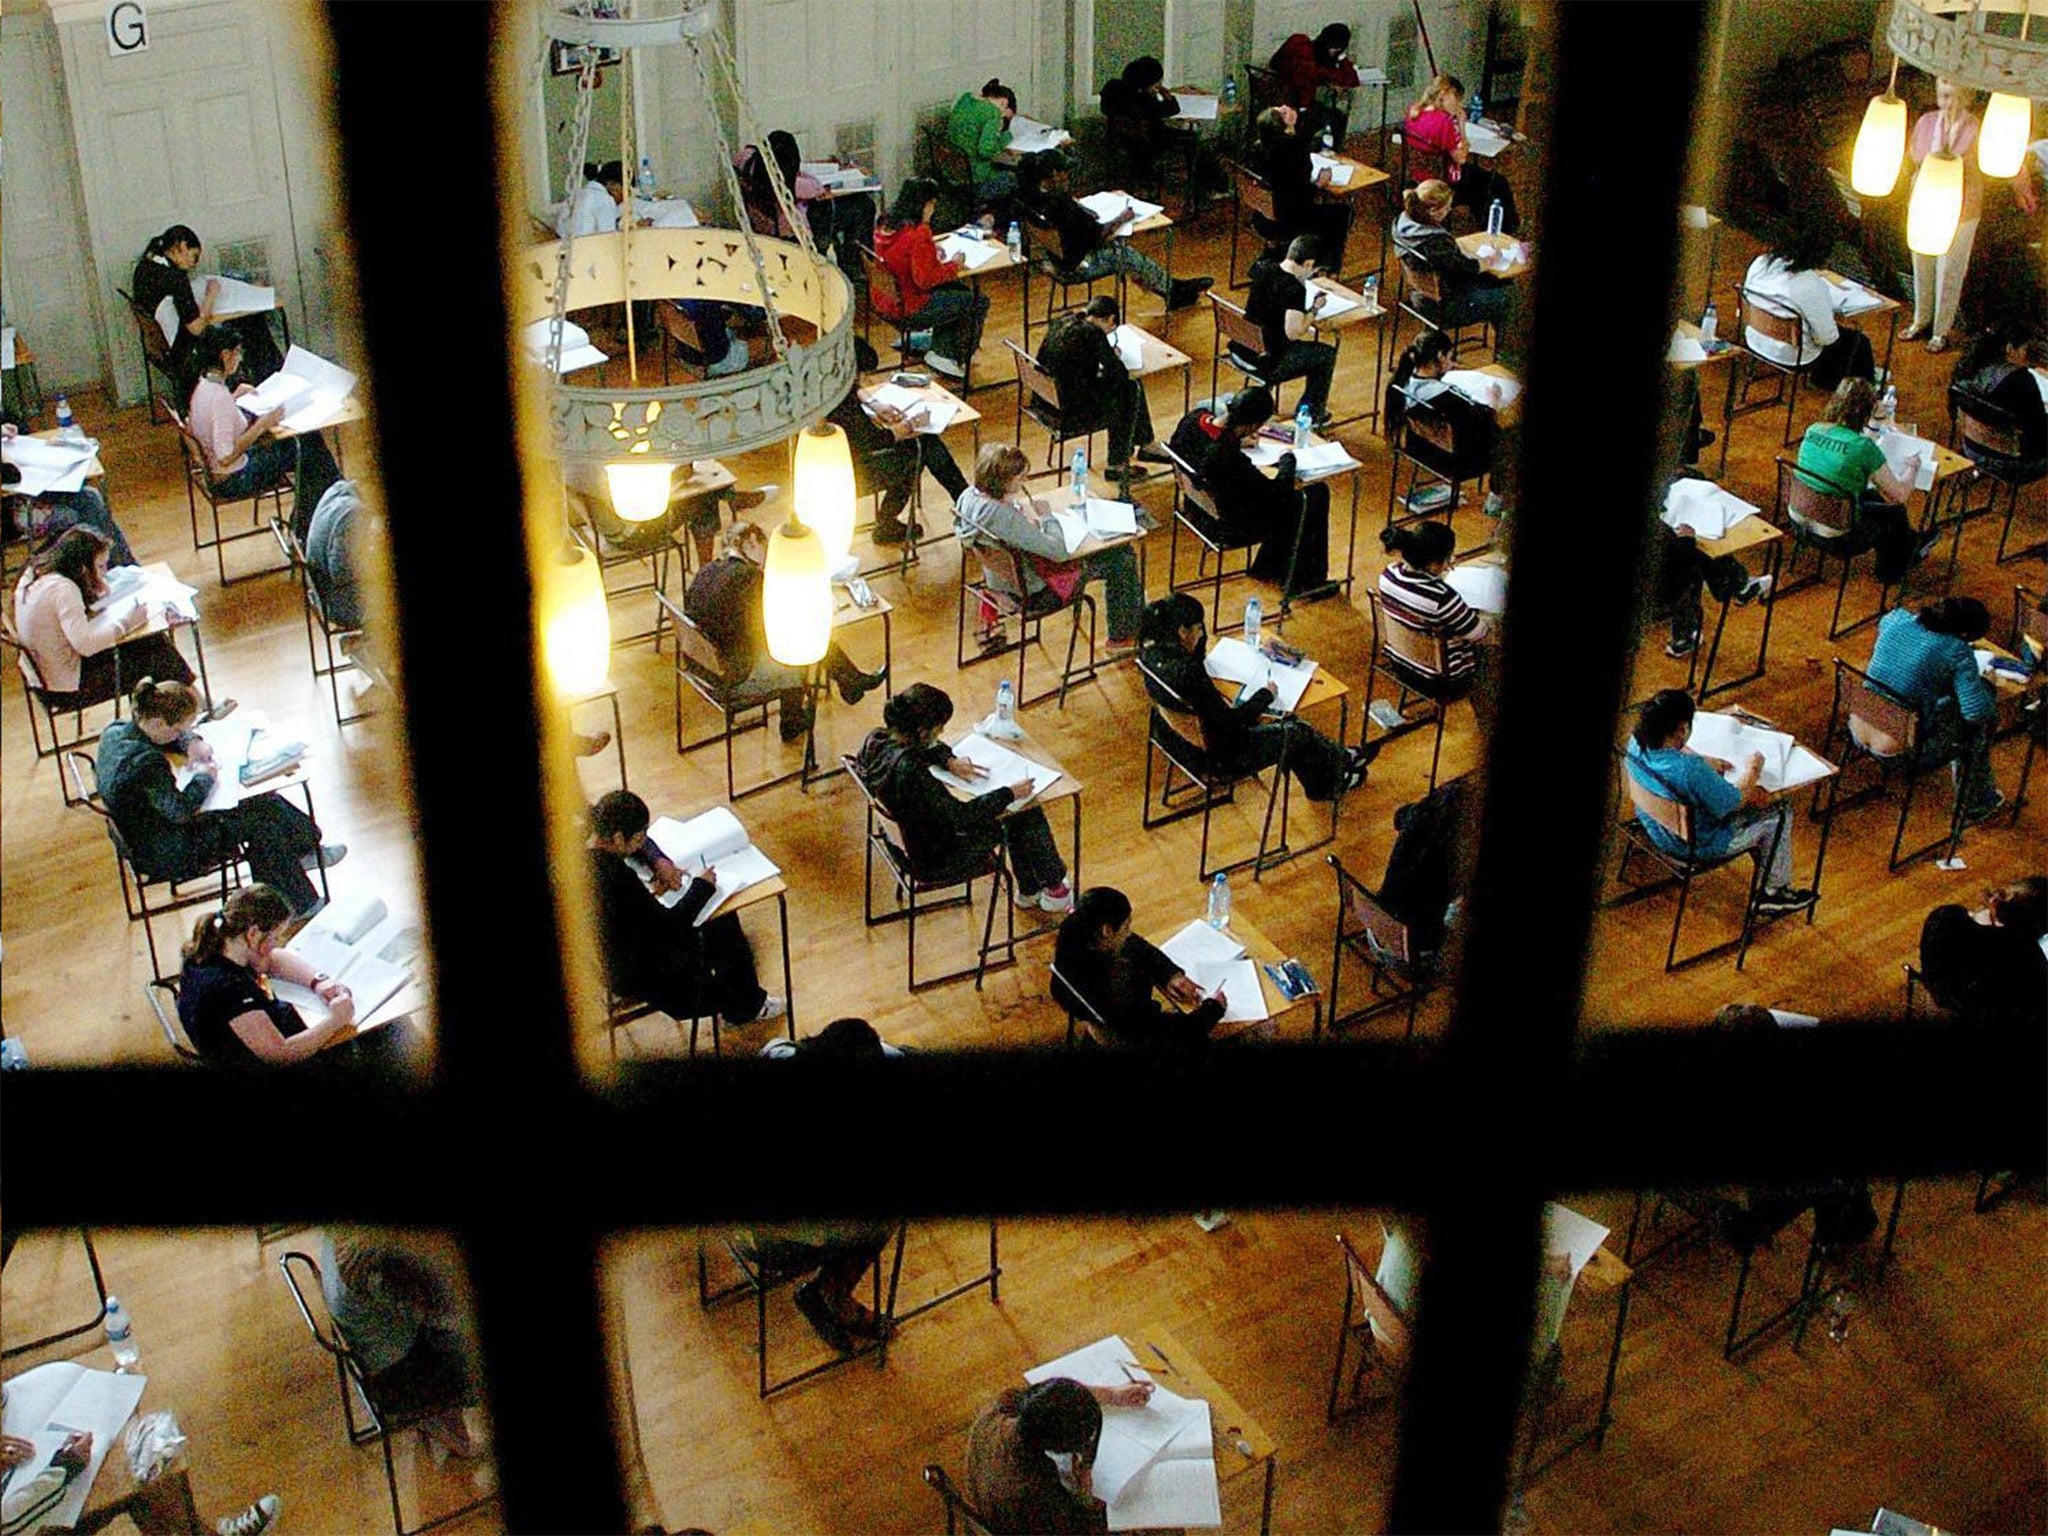 Grammar schools are a racket that offers the middle classes a public school education for free